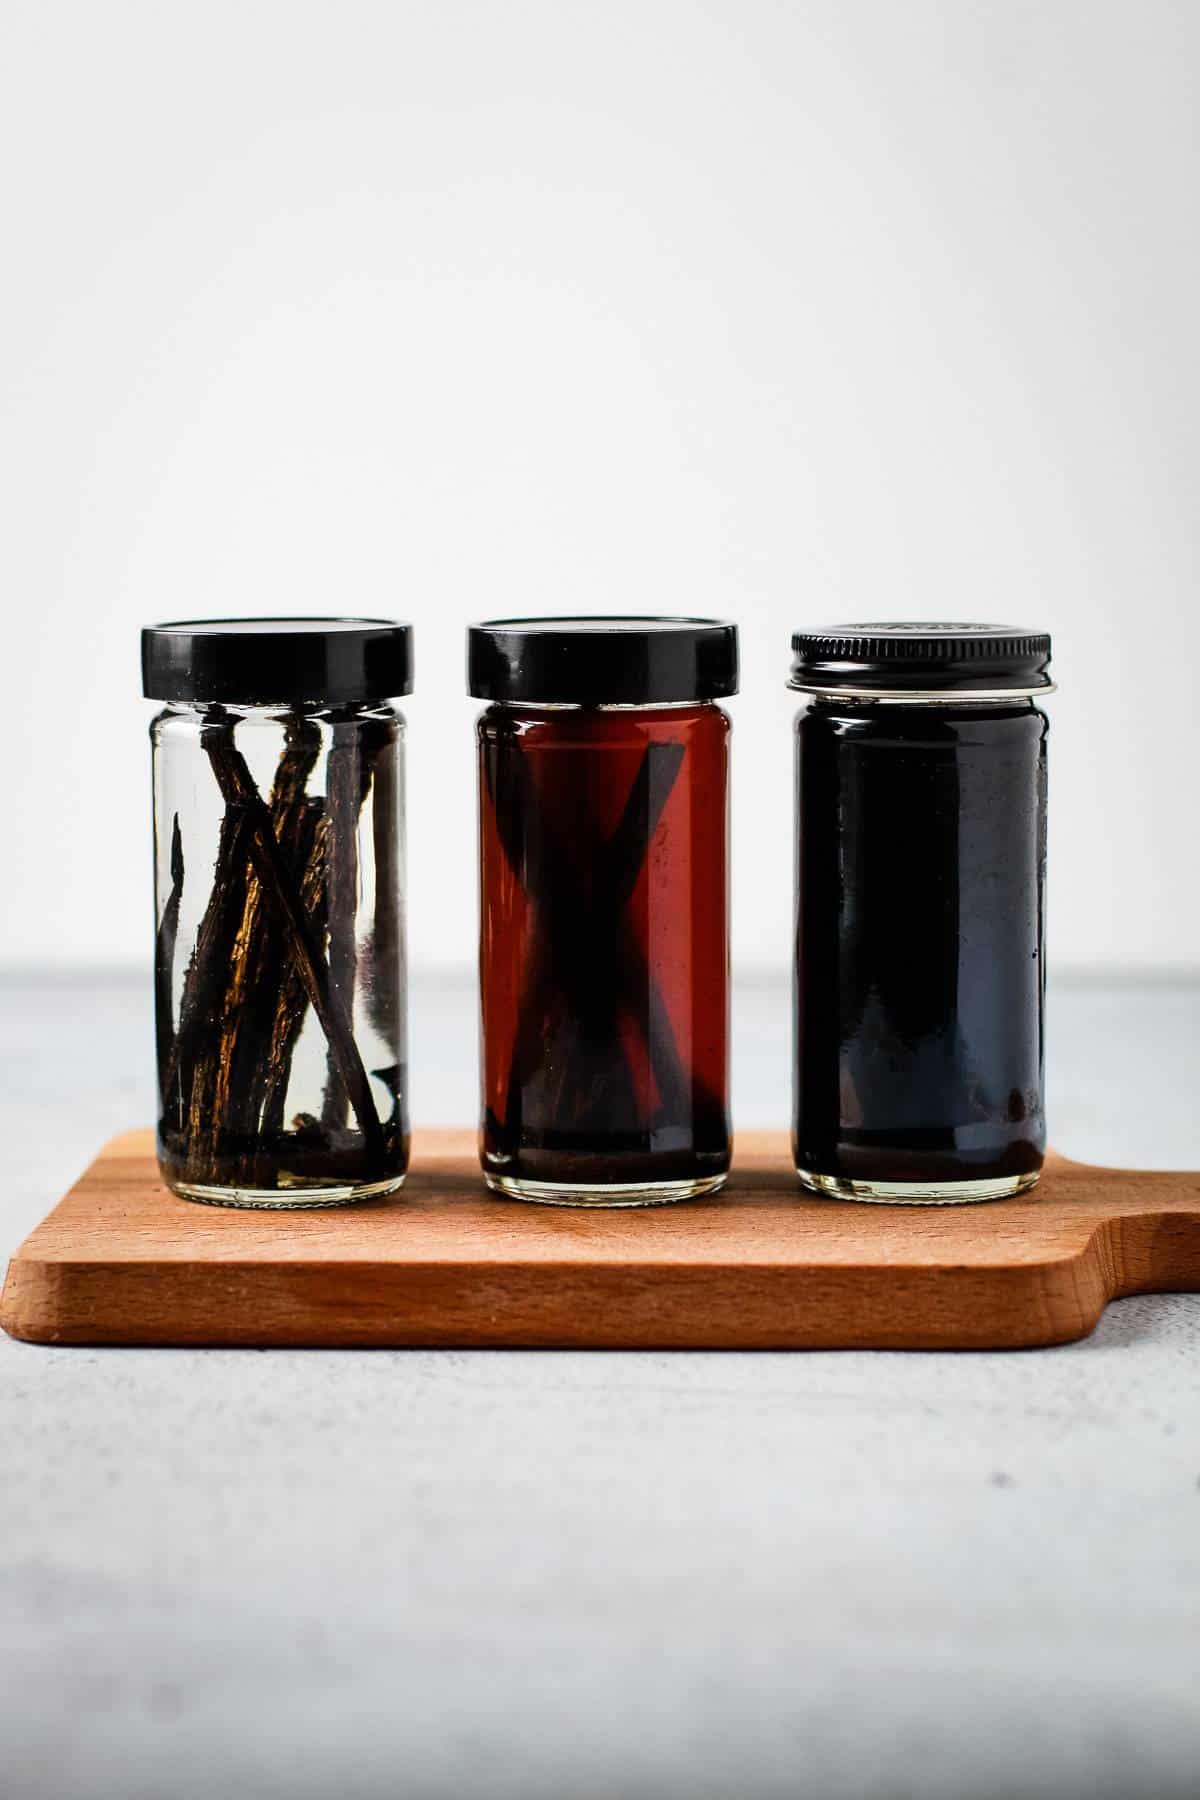 The different stages of making vanilla extract.